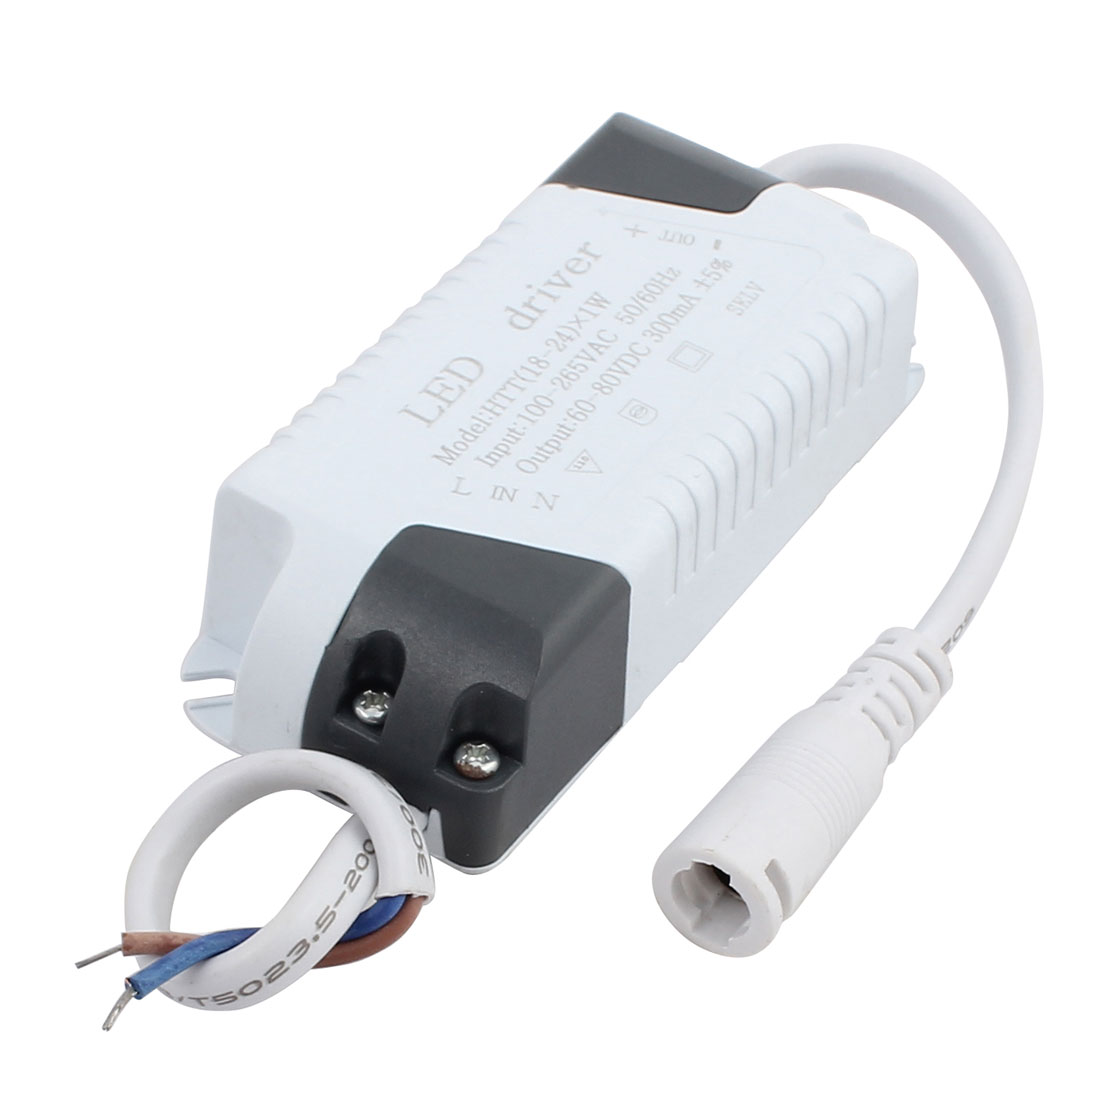 18-24 x 1W DC Female Connector Advanced Plastic Shell LED Driver Power Supply